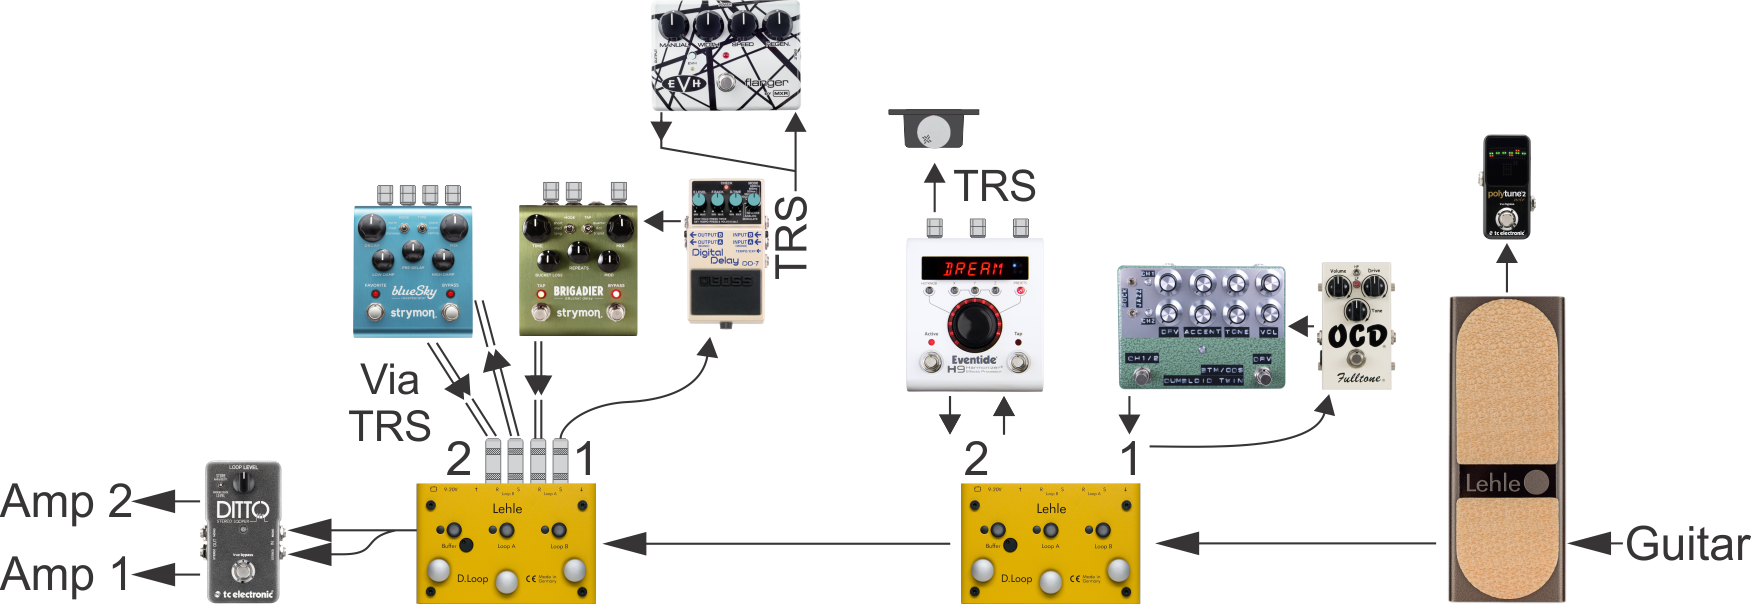 Pedalboard Wiring Diagram Just Another Blog Diagrams Guitar Effects Pedals Pedal Board Source Rh 20 18 5 Ludwiglab De